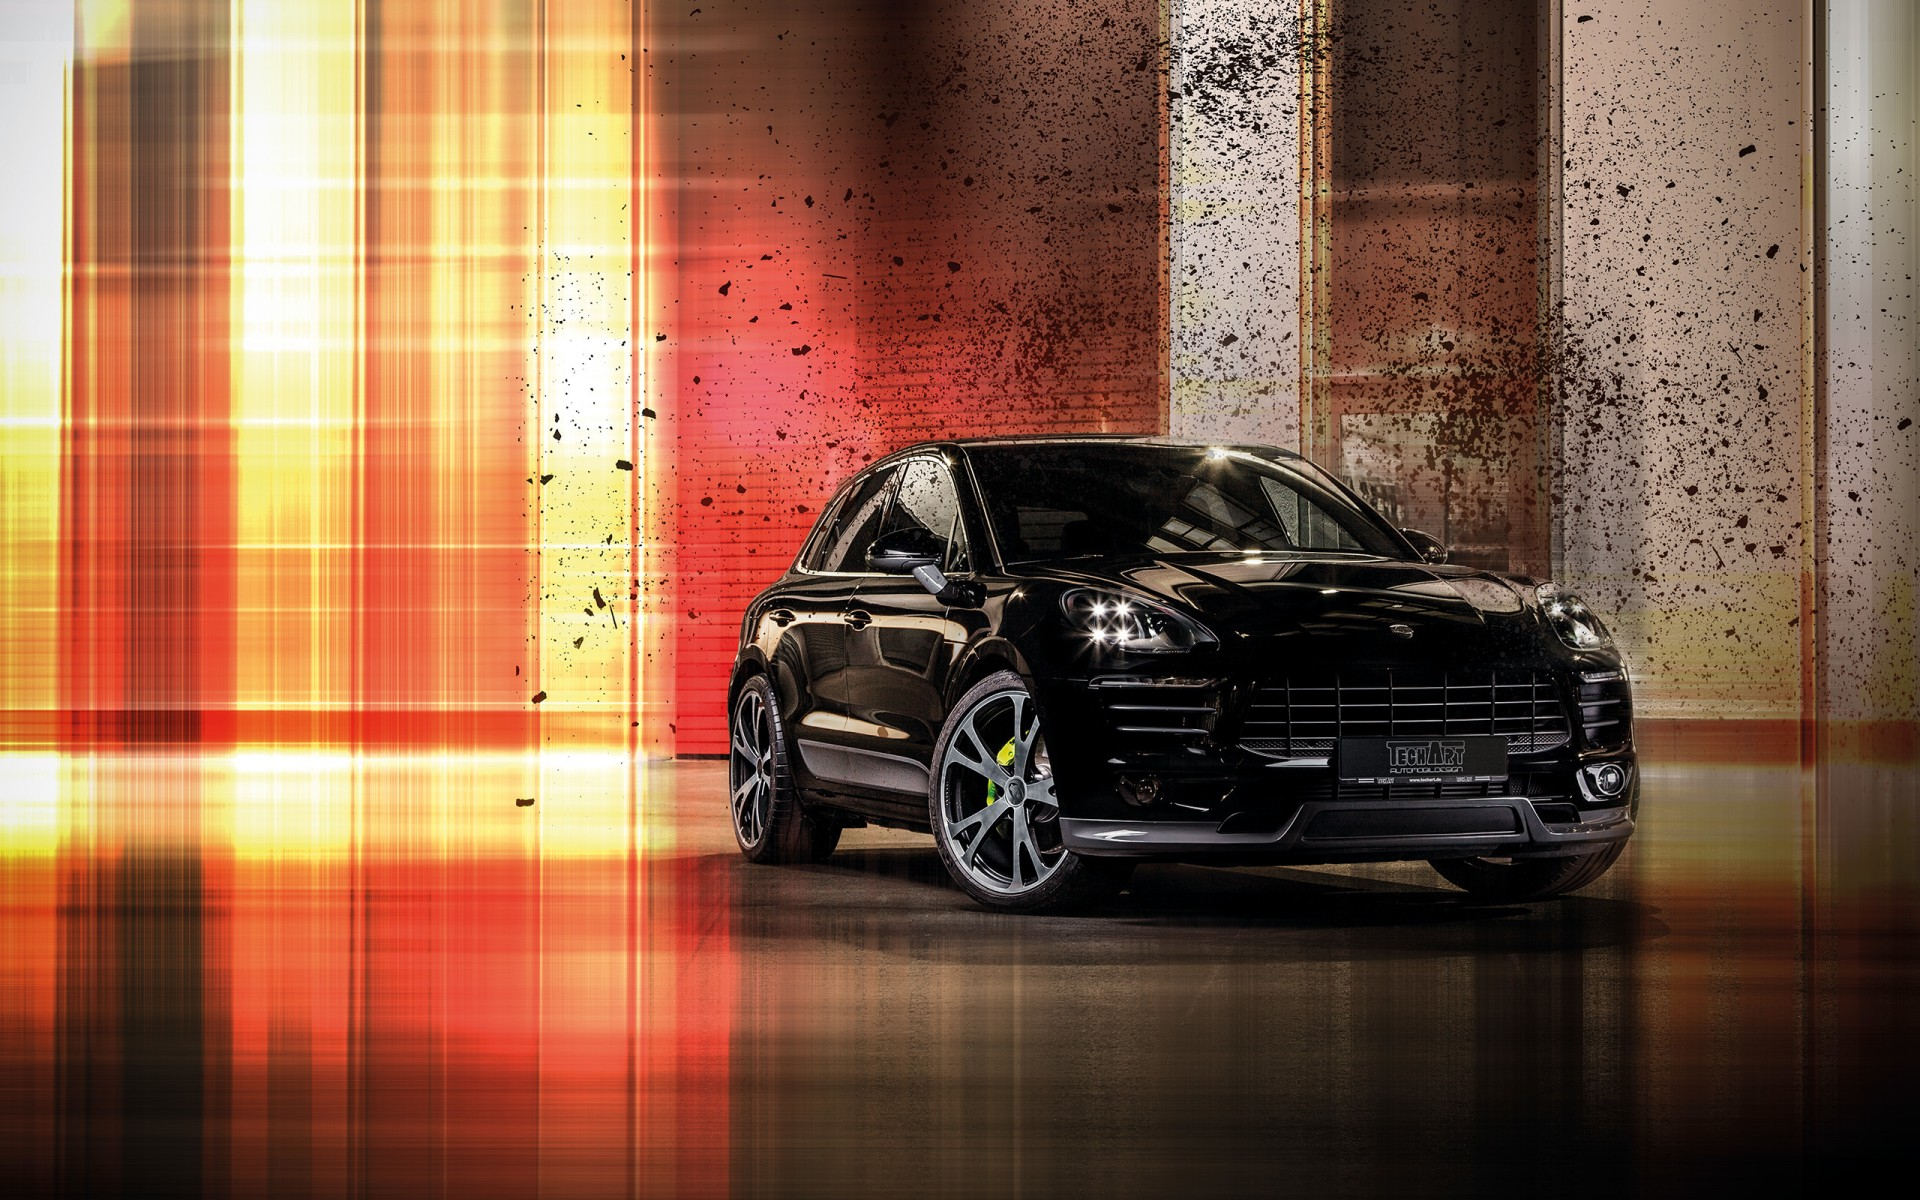 2015 Porsche Macan Wallpapers Hd Wallpapers Id 15681